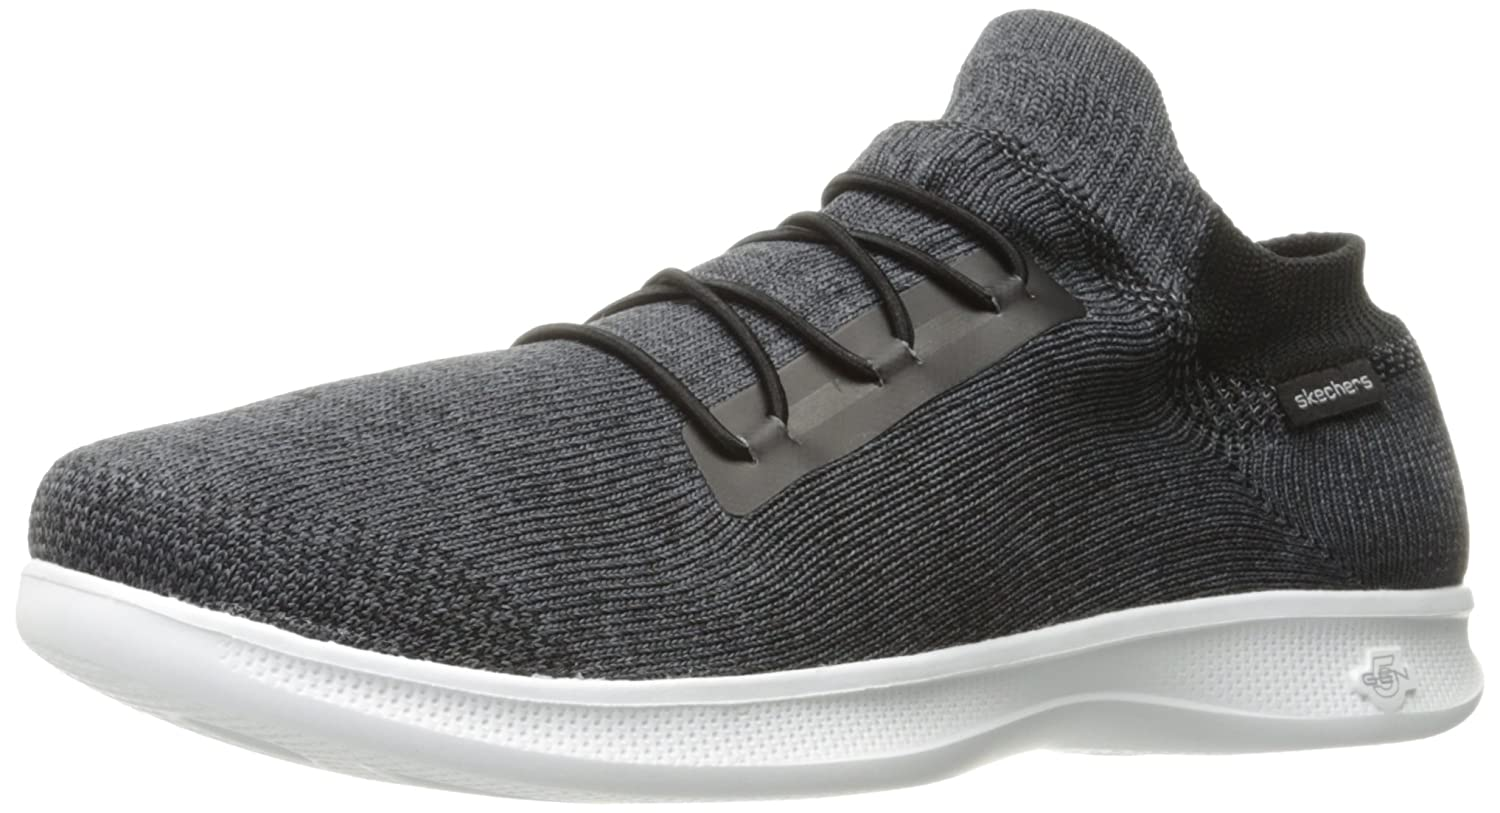 TALLA 40 EU. Skechers Go Step Lite-Effortless, Entrenadores para Mujer